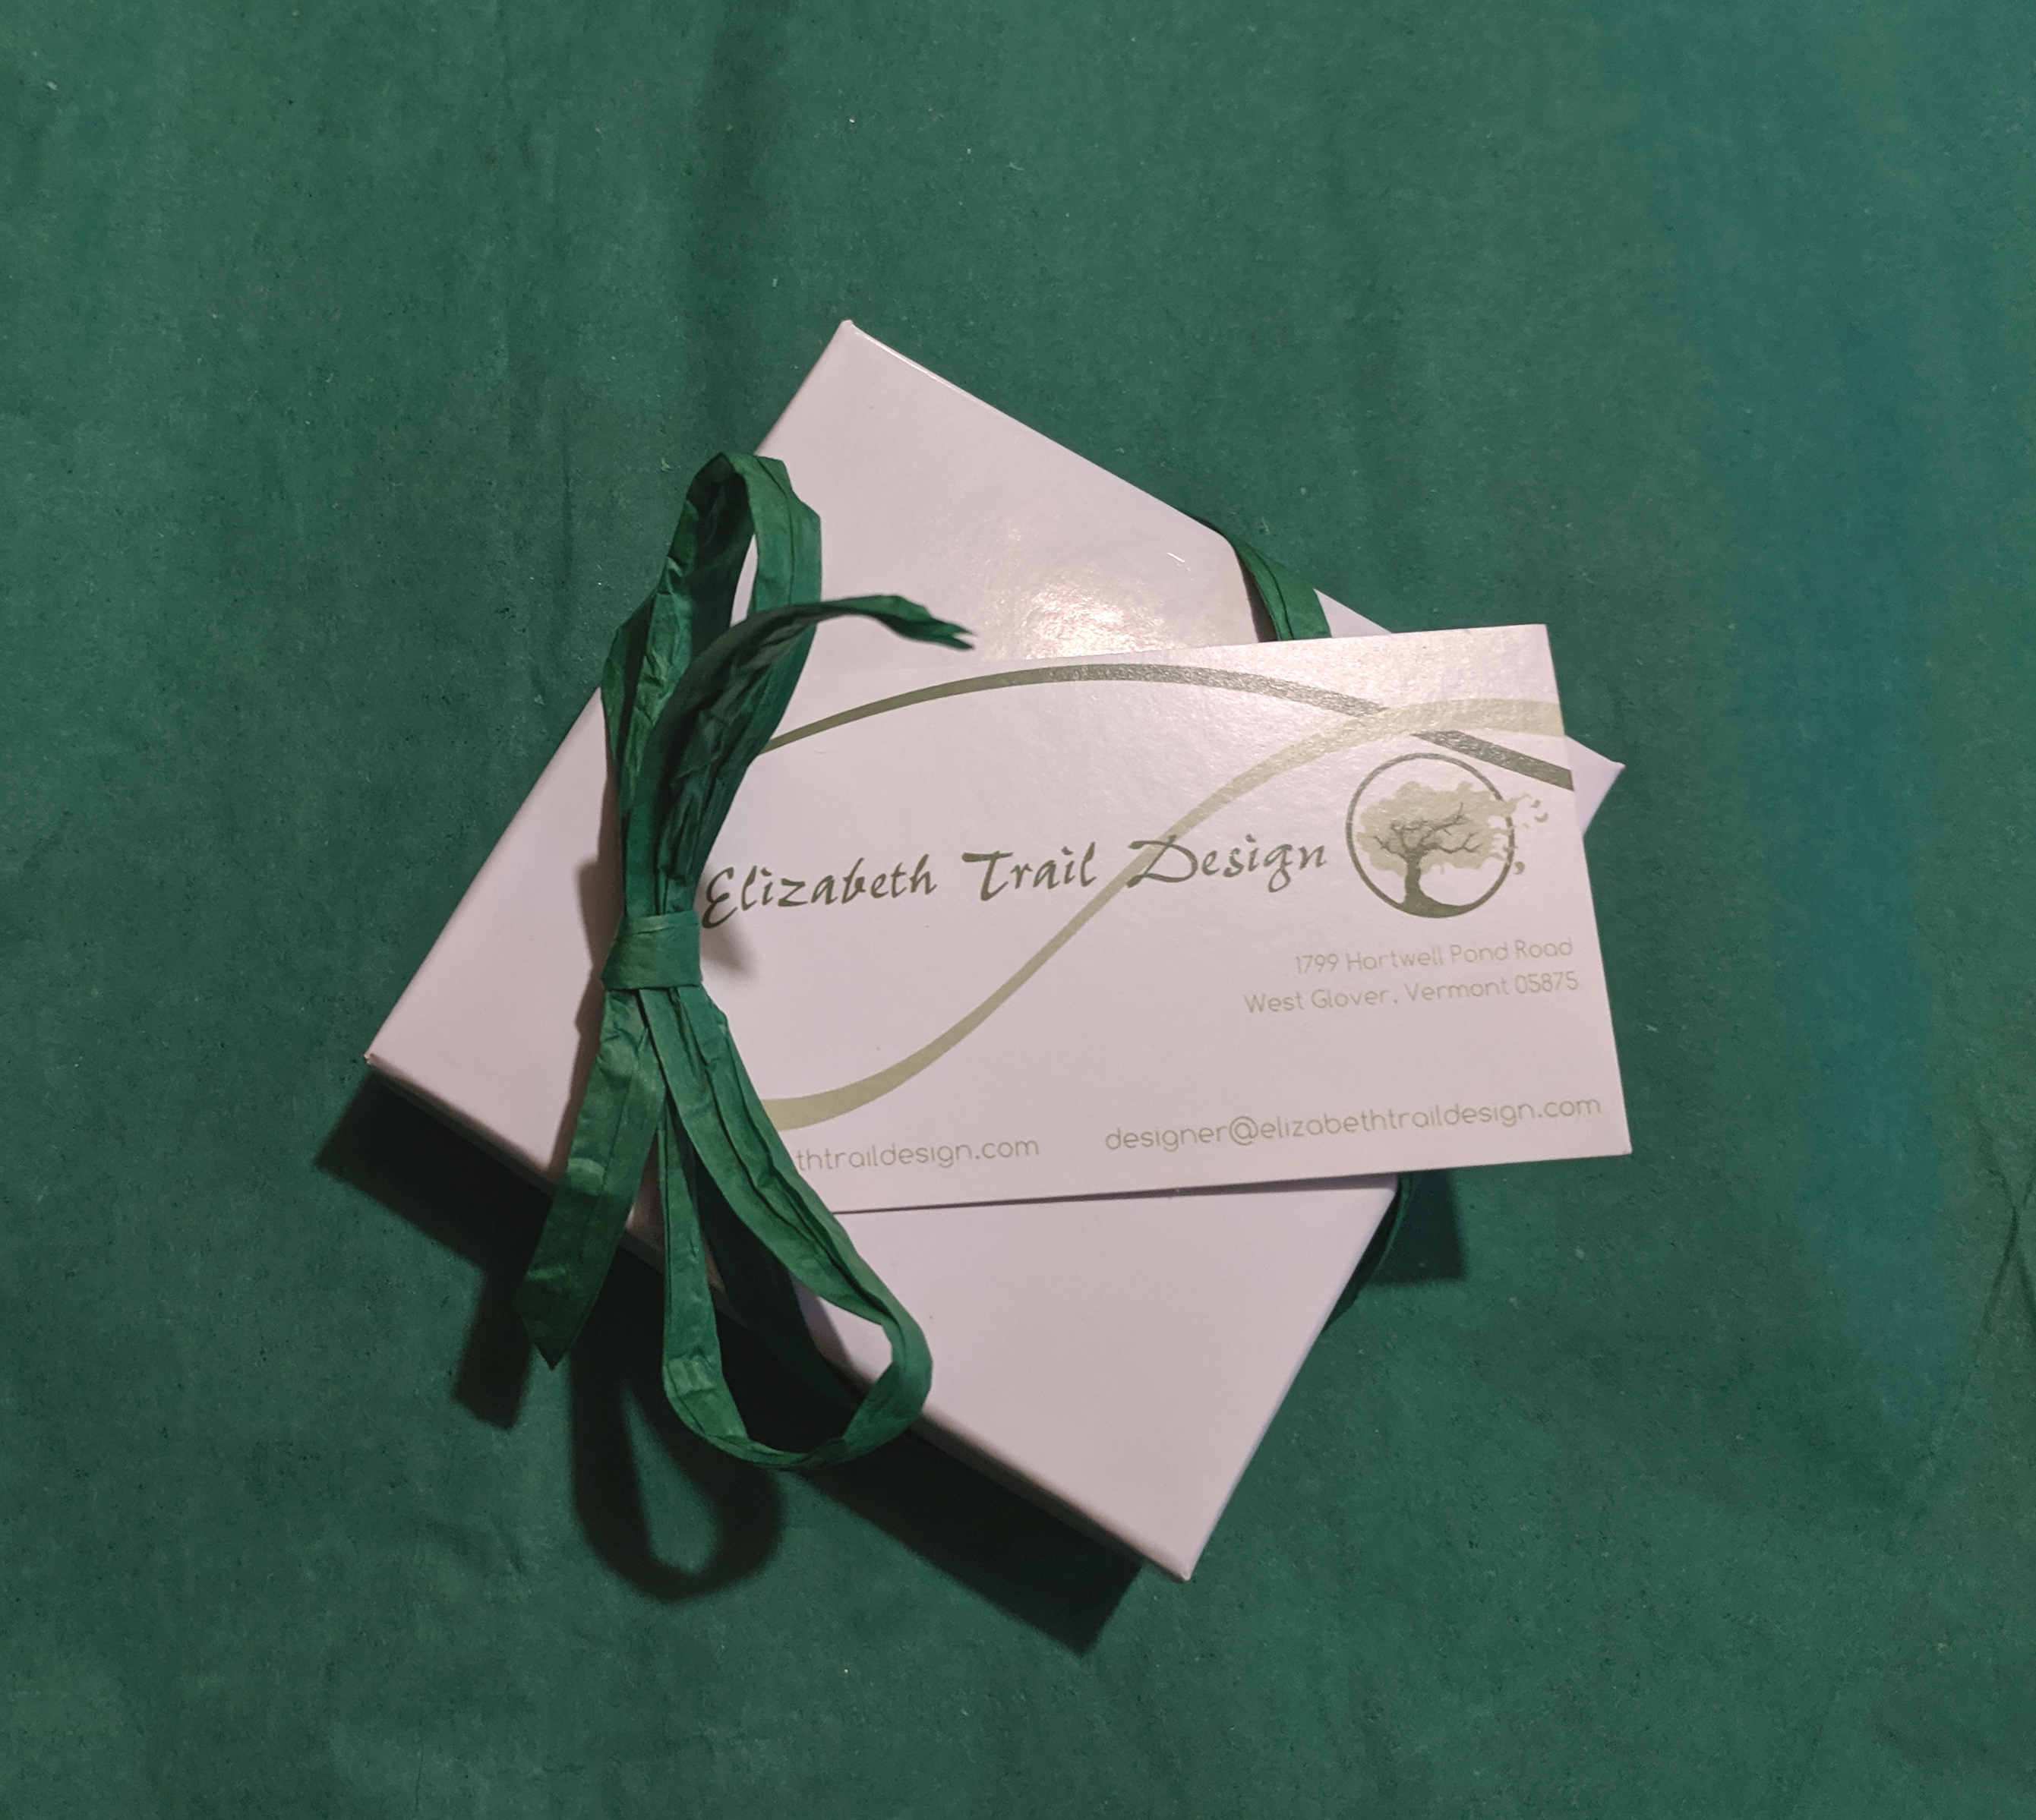 Image of the box used to ship Elizabeth Trail Design jewelry